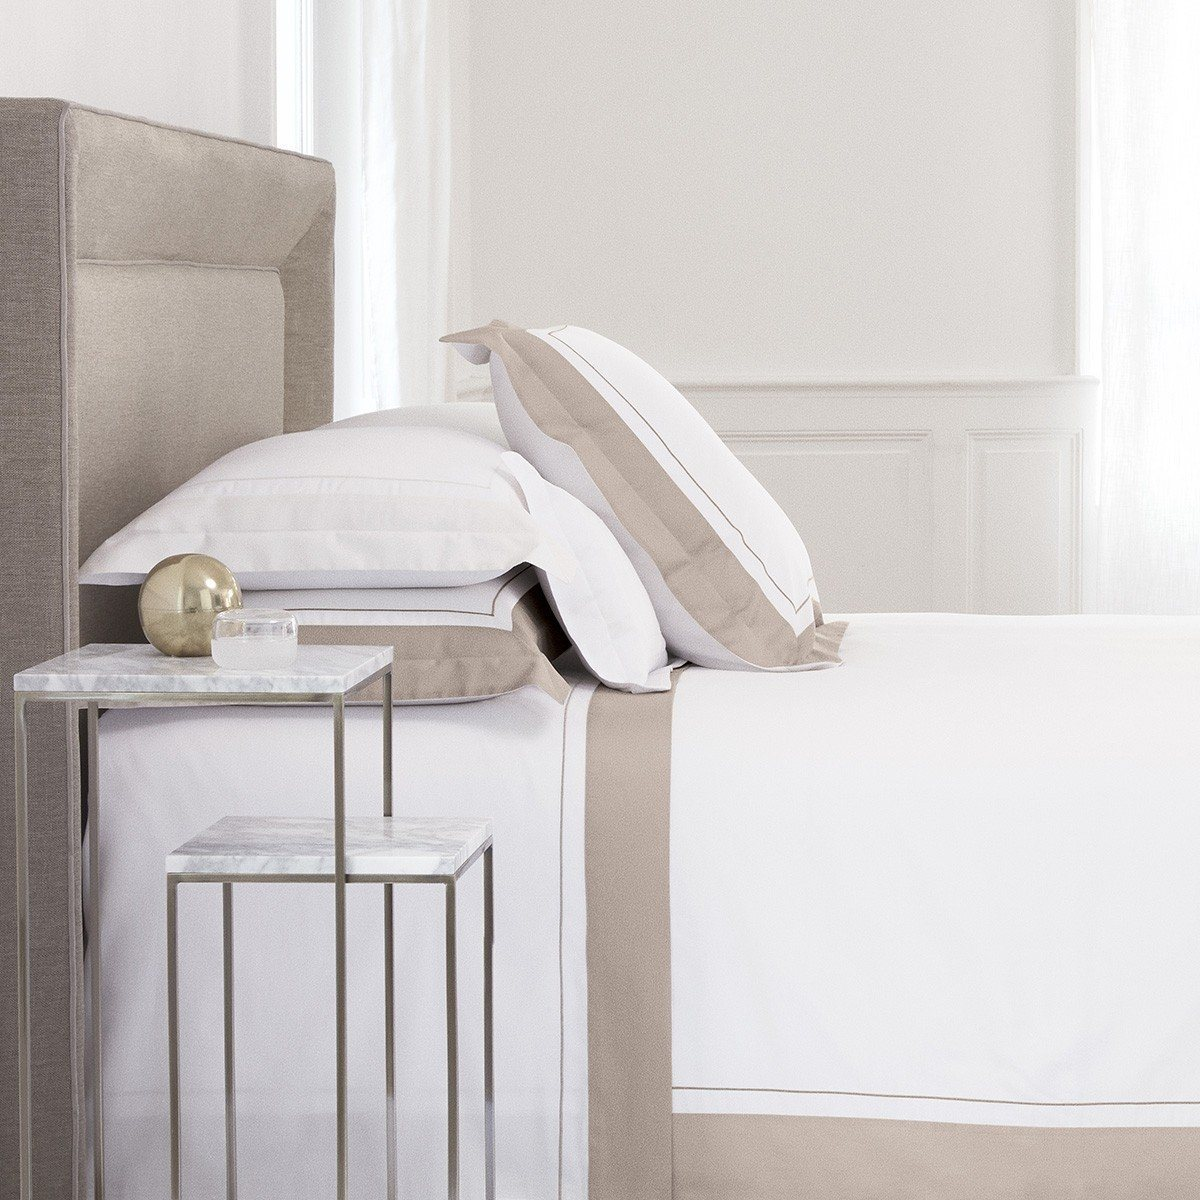 Lutece Pierre Bedding by Yves Delorme | Fig Linens - White, cotton, sheets, shams, duvet cover